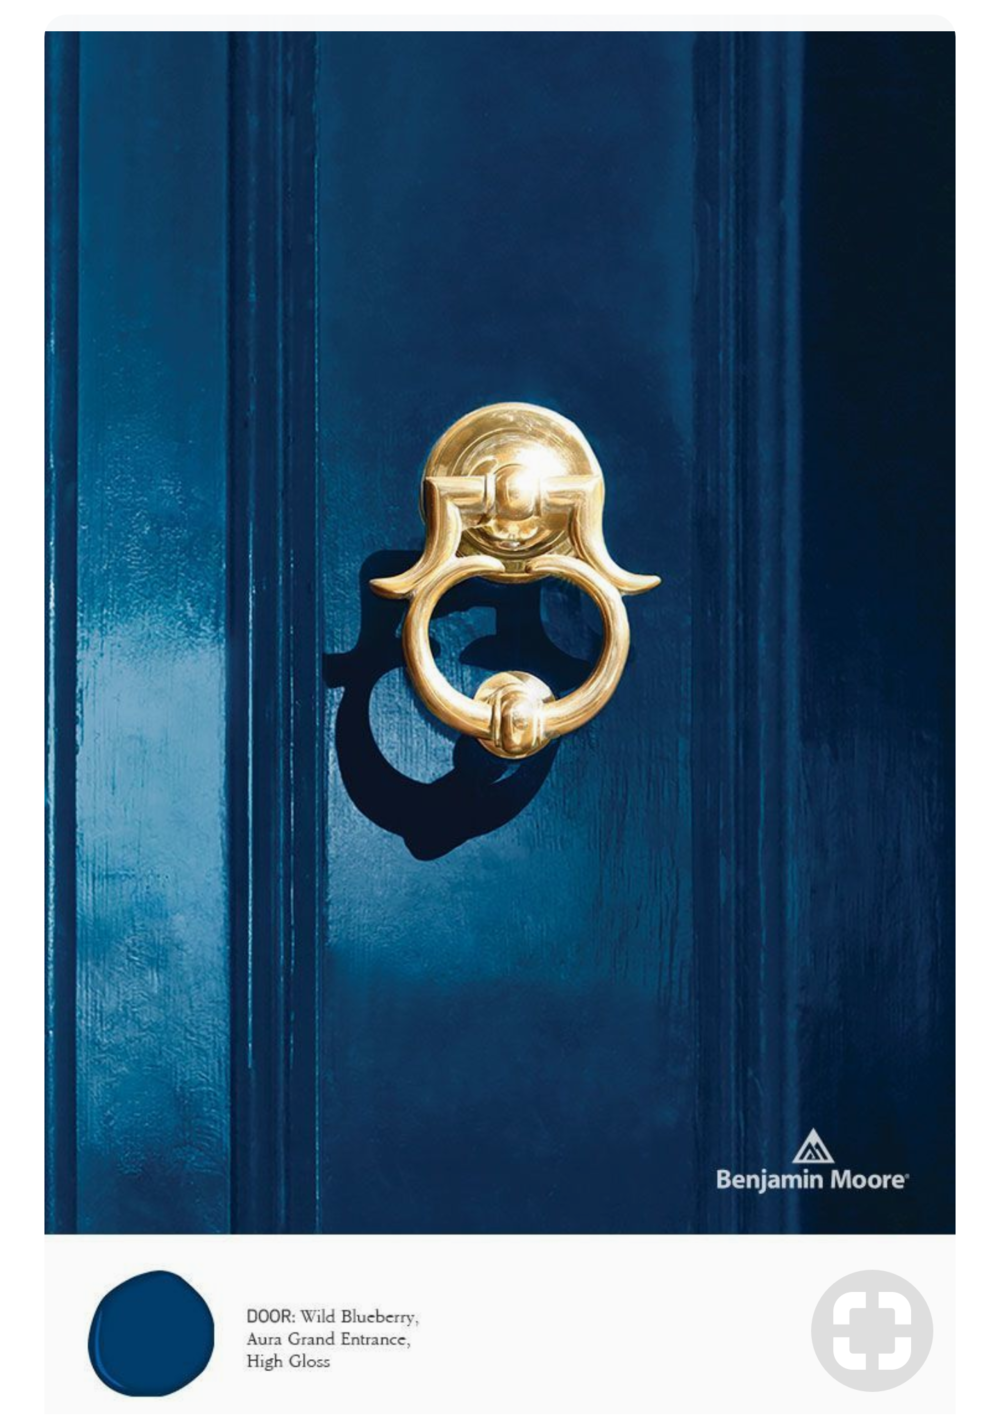 Benjamin Moore Aura Grand Entrance: Wild Blueberry